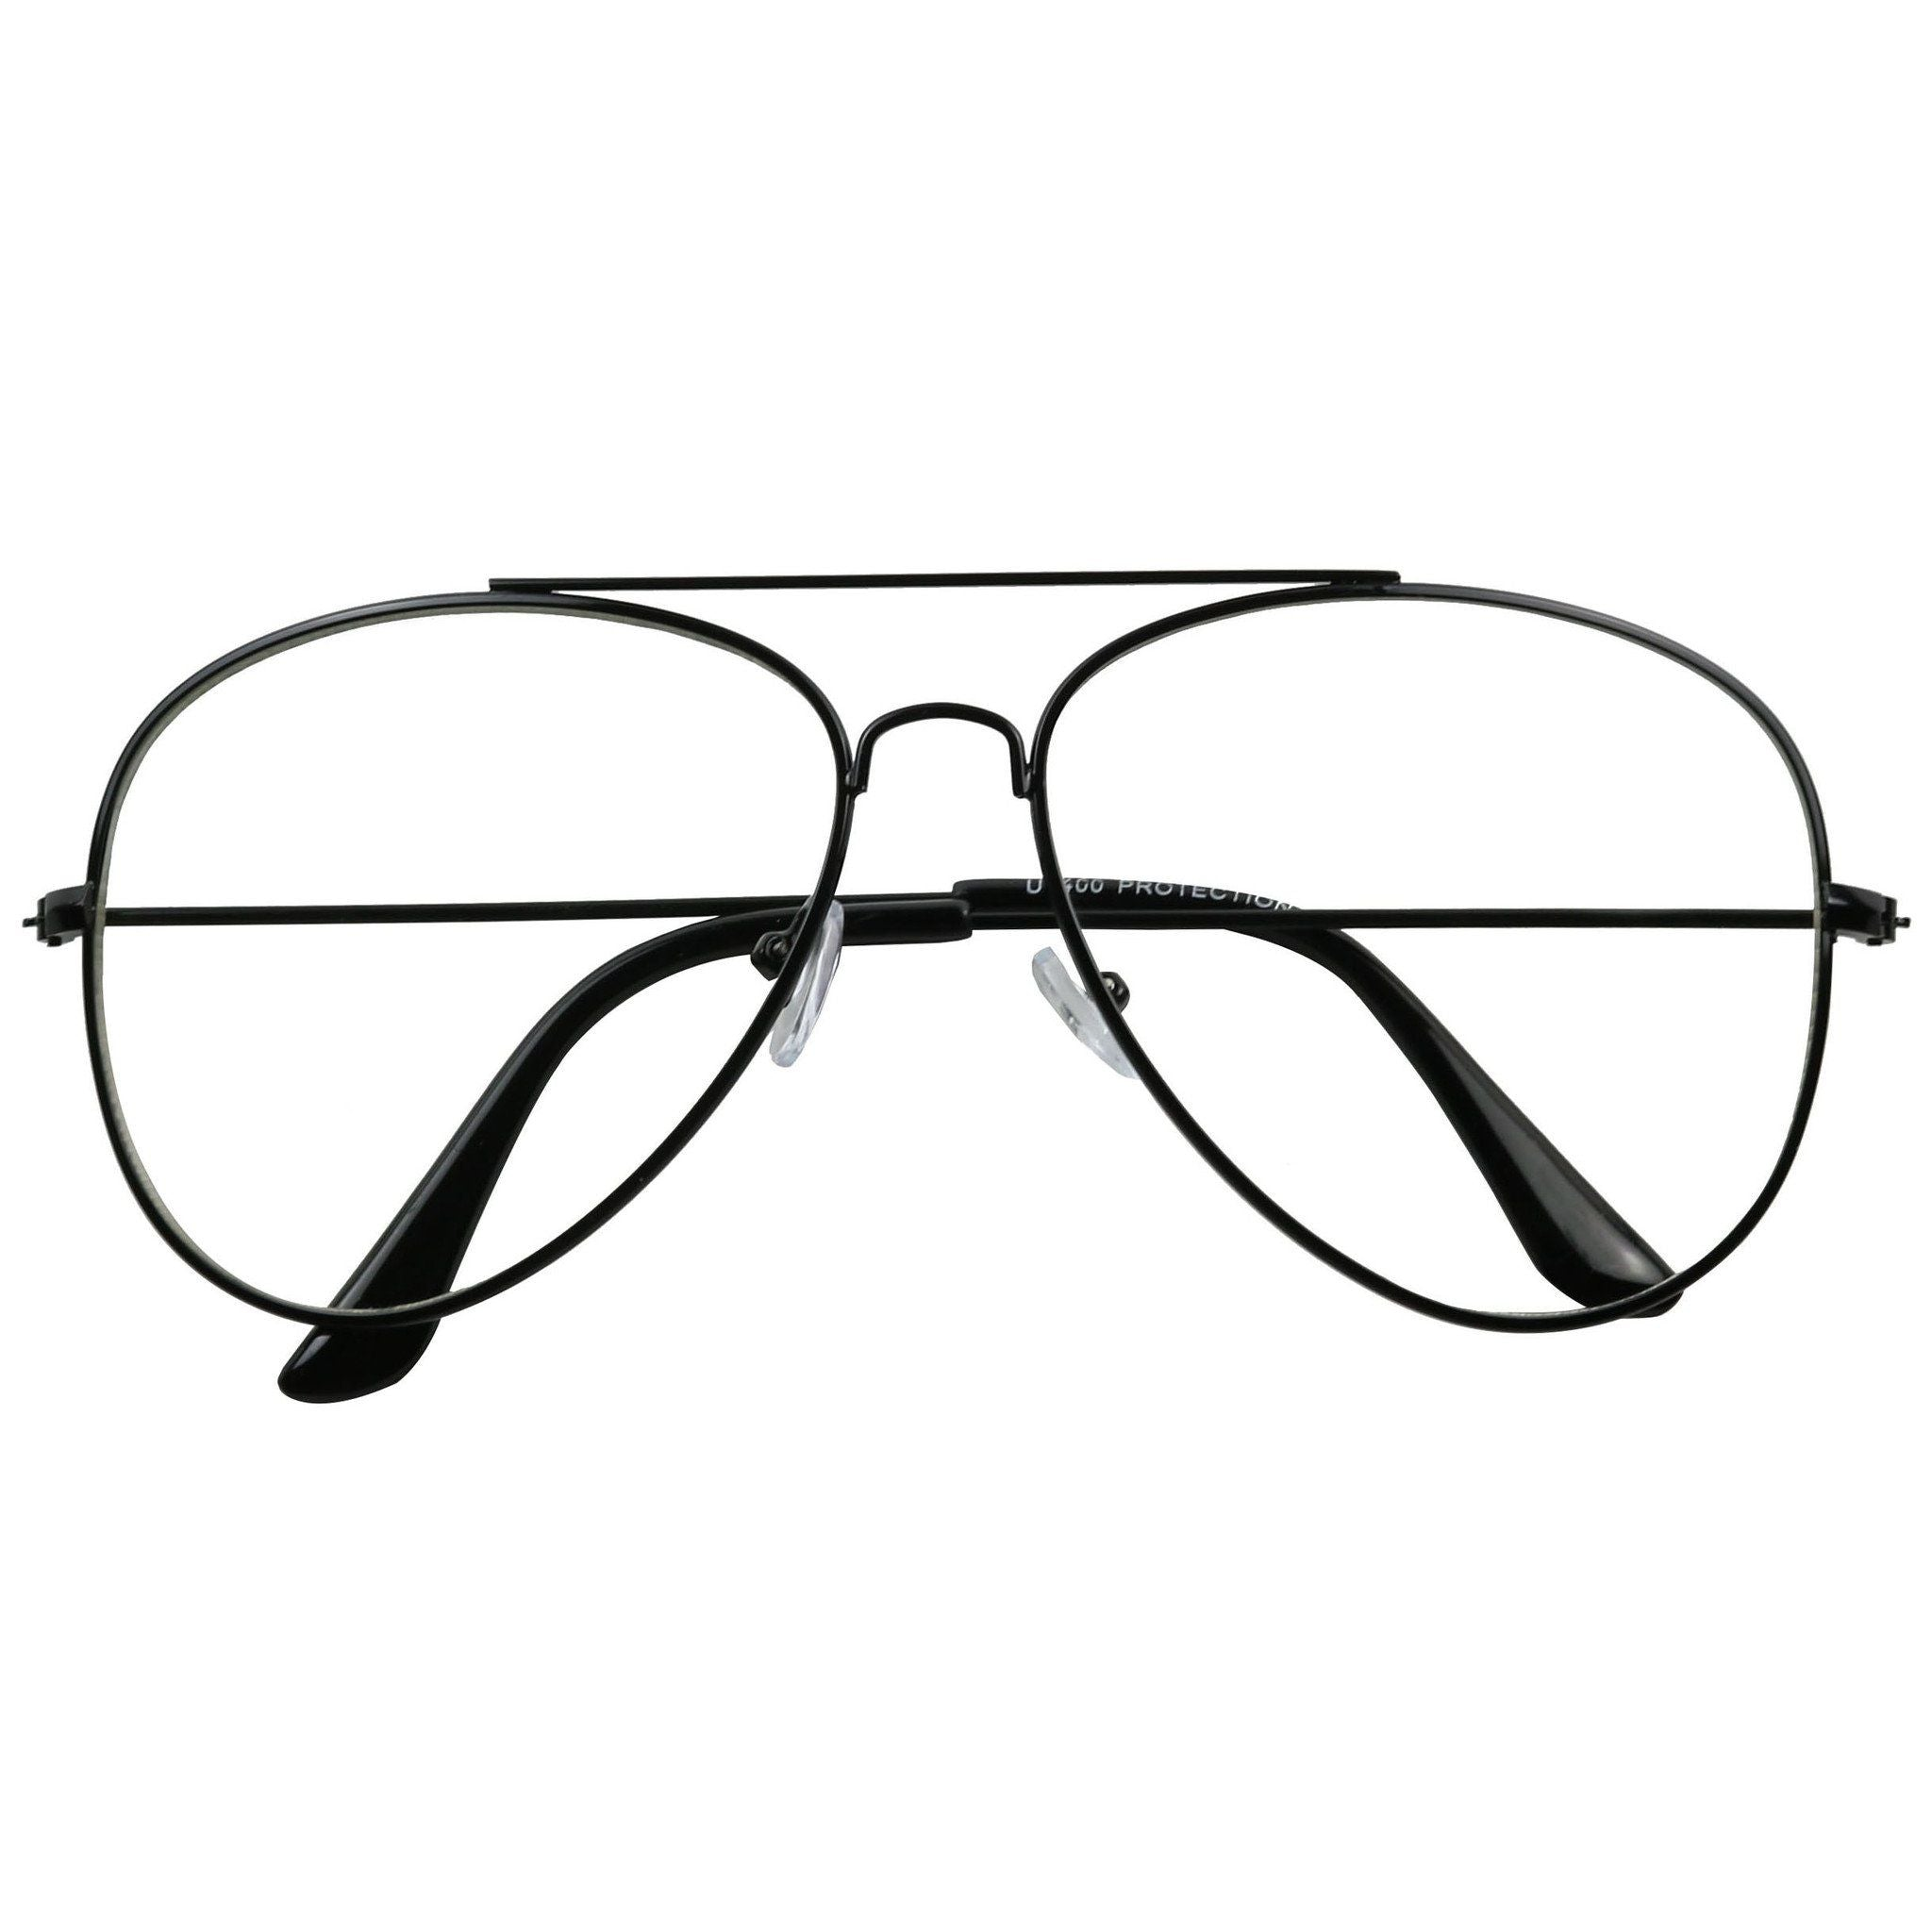 b204190c7d ... LACY Gold Metal Frame Teardrop Shaped Favorite Clear Glasses - ShadyVEU  ...